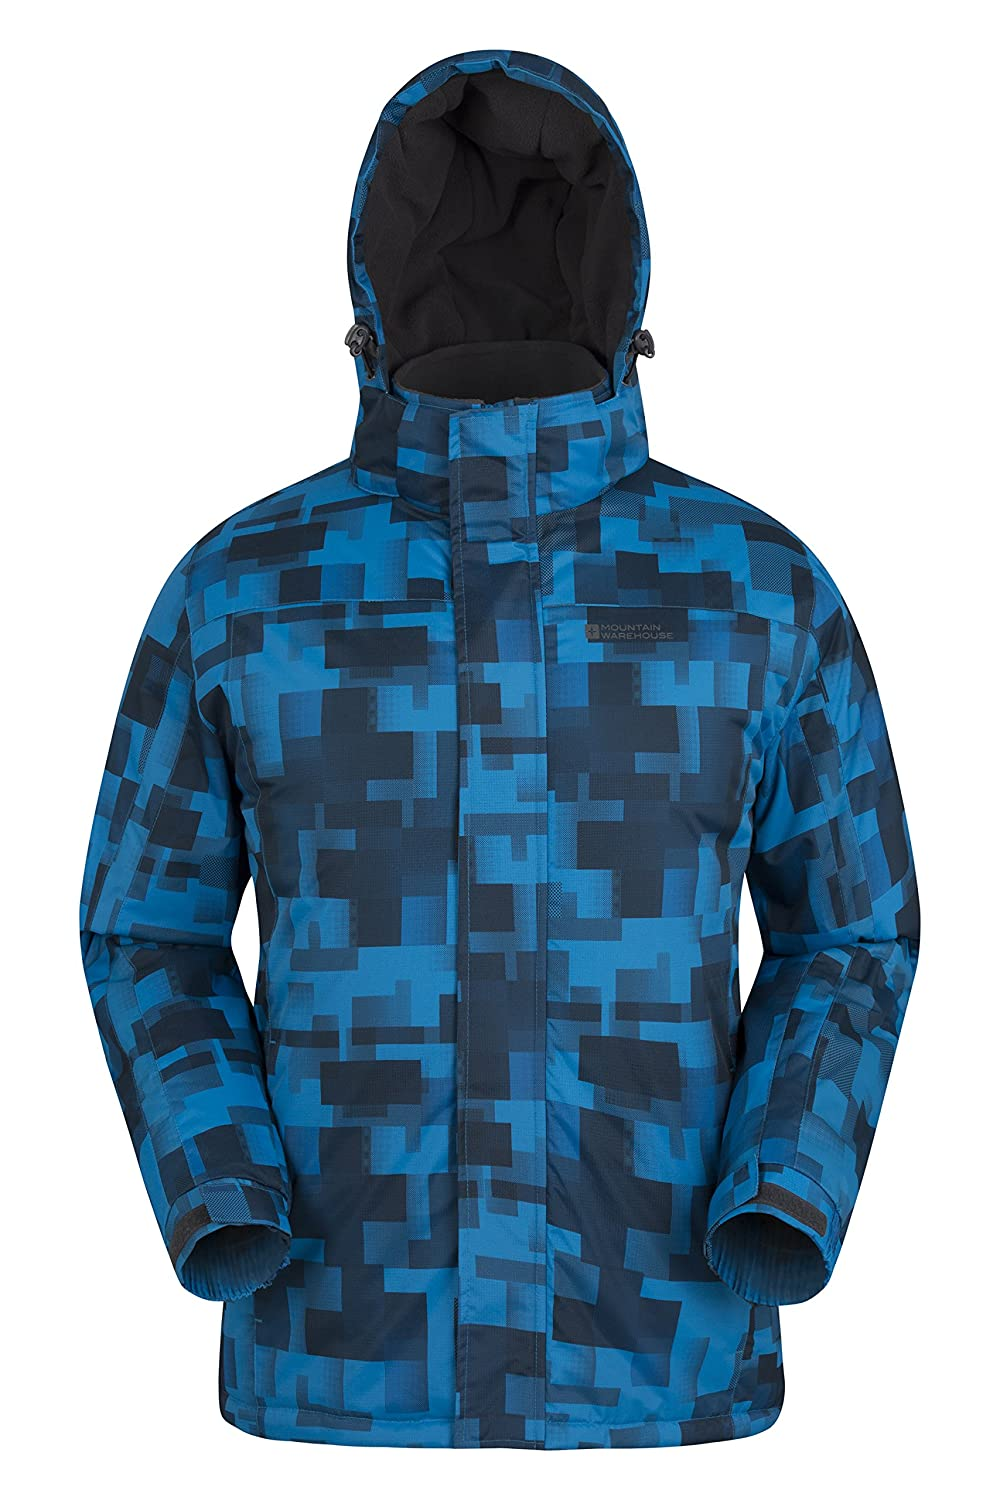 Mountain Warehouse Shadow Men's Printed Ski Jacket Snow Proof, Insulated & Fleece